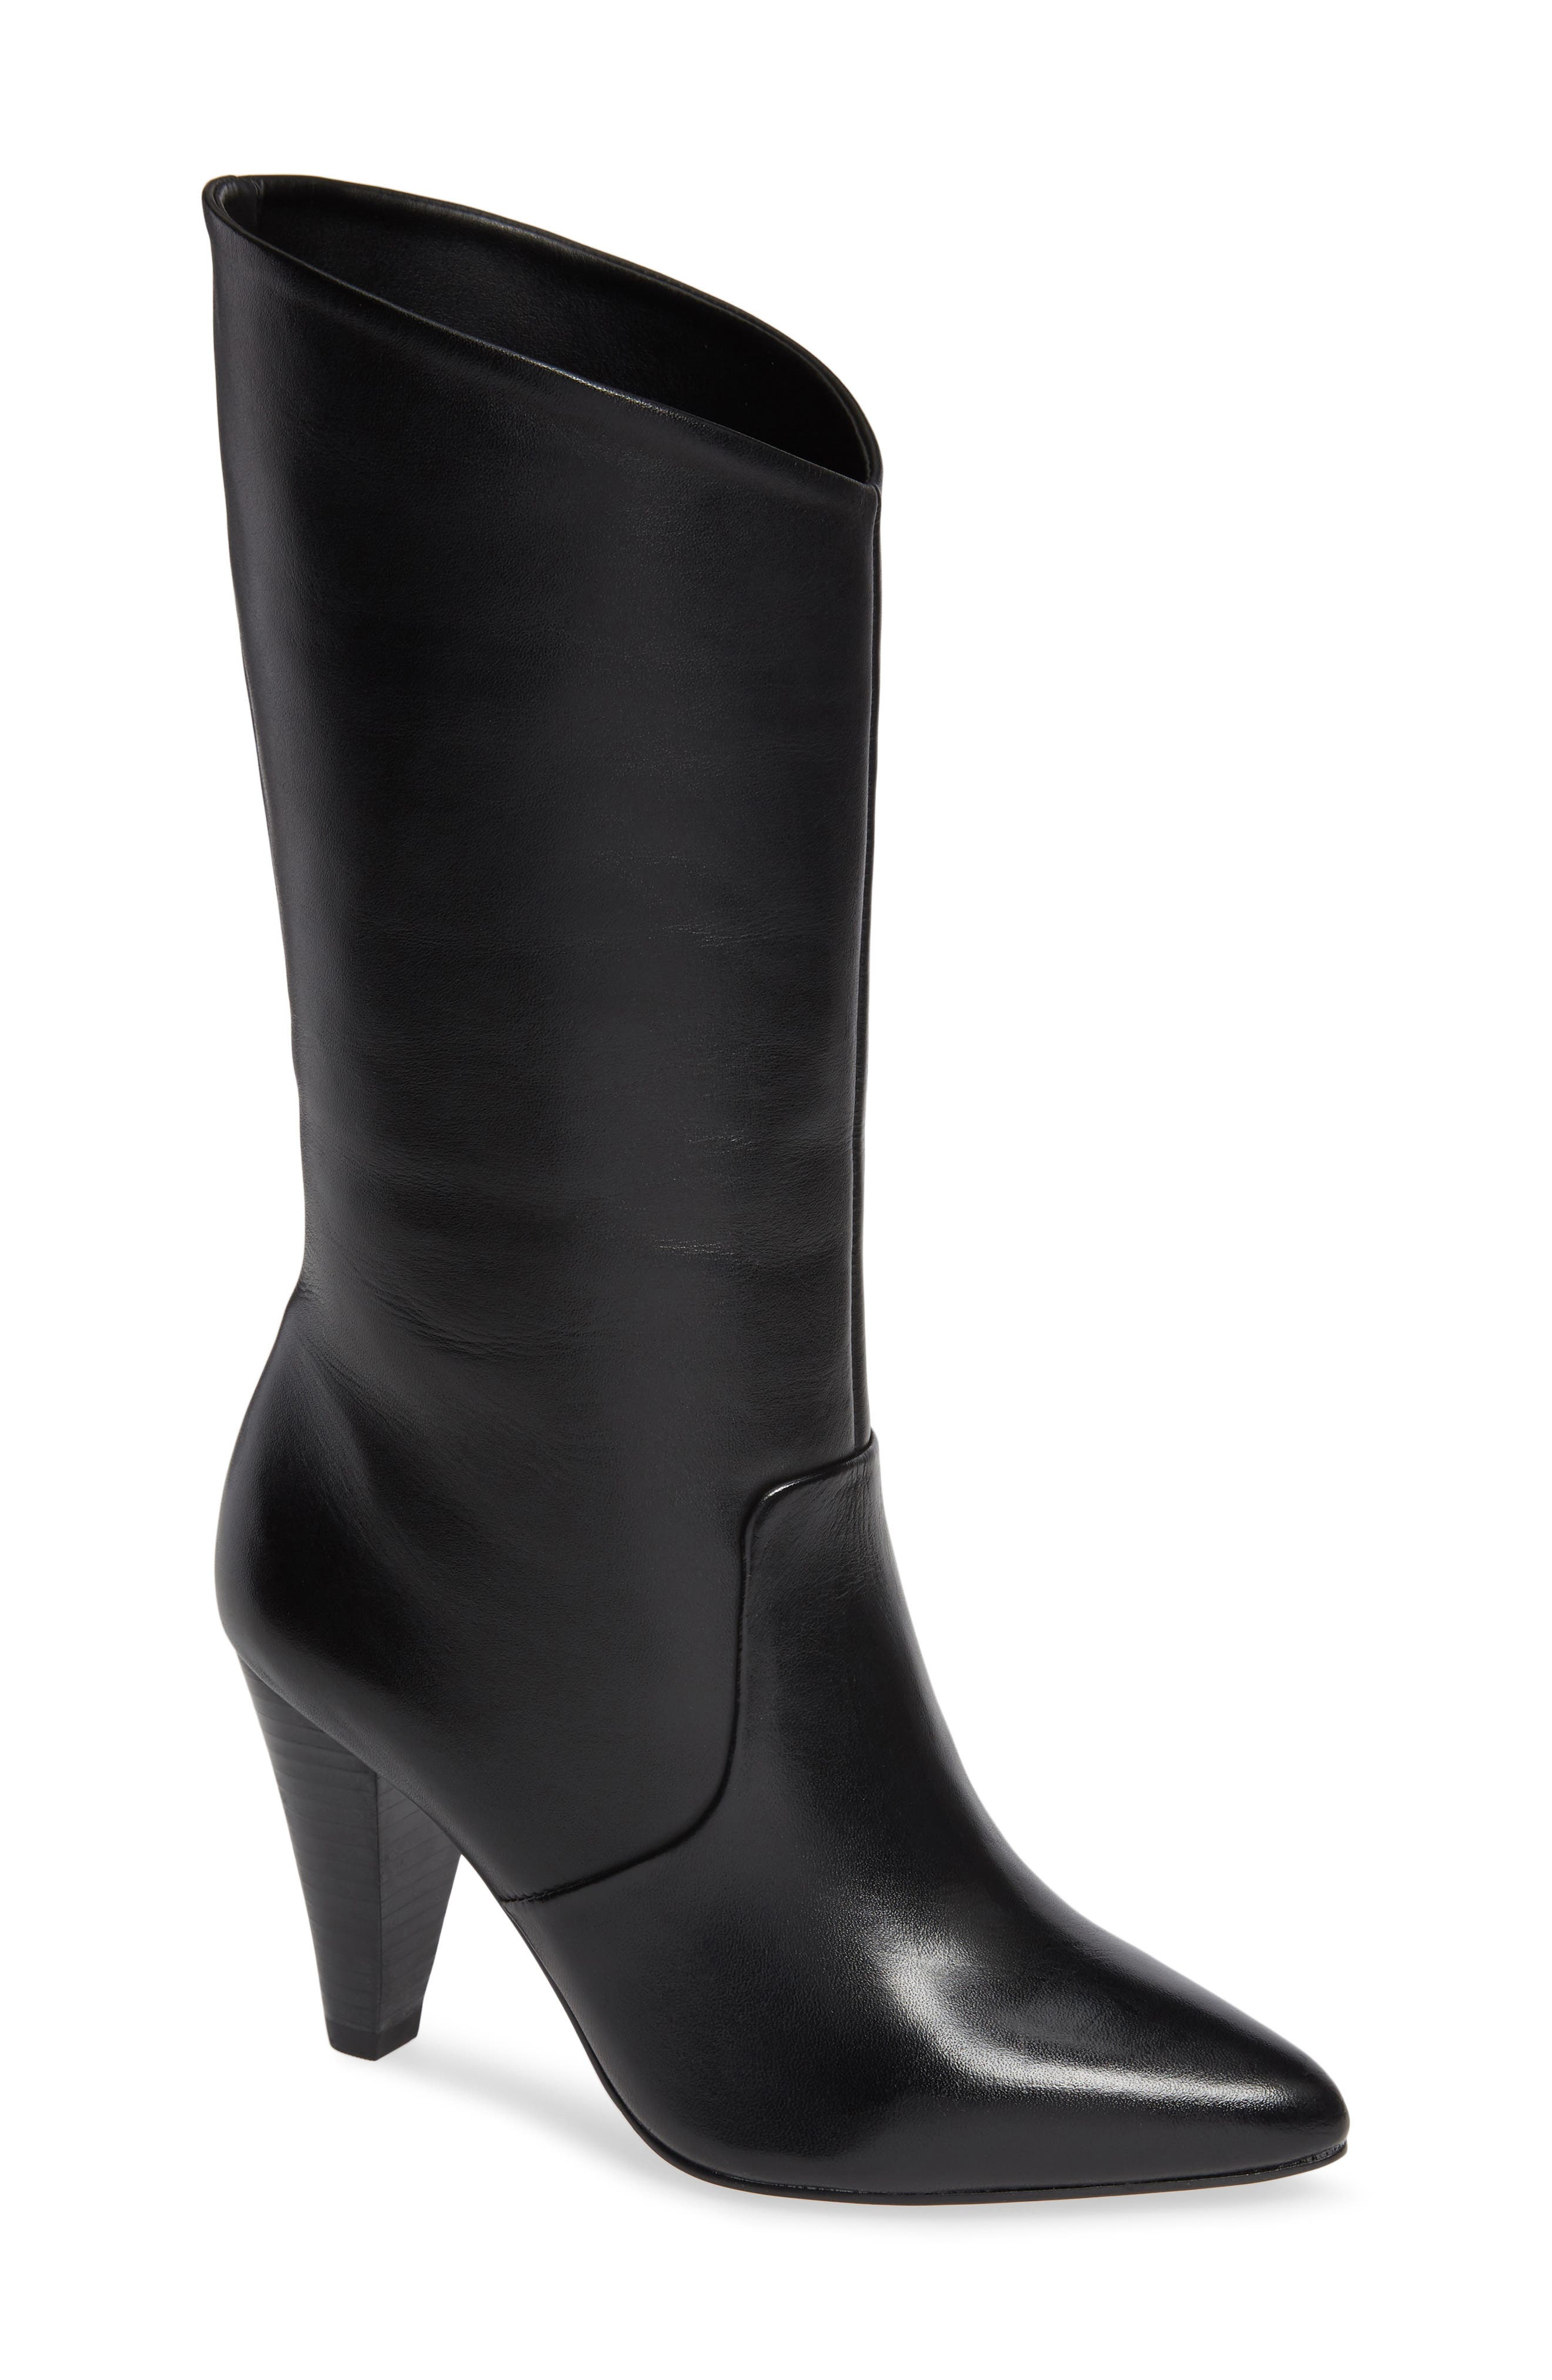 LUST FOR LIFE Cayenne Boot in Black Leather